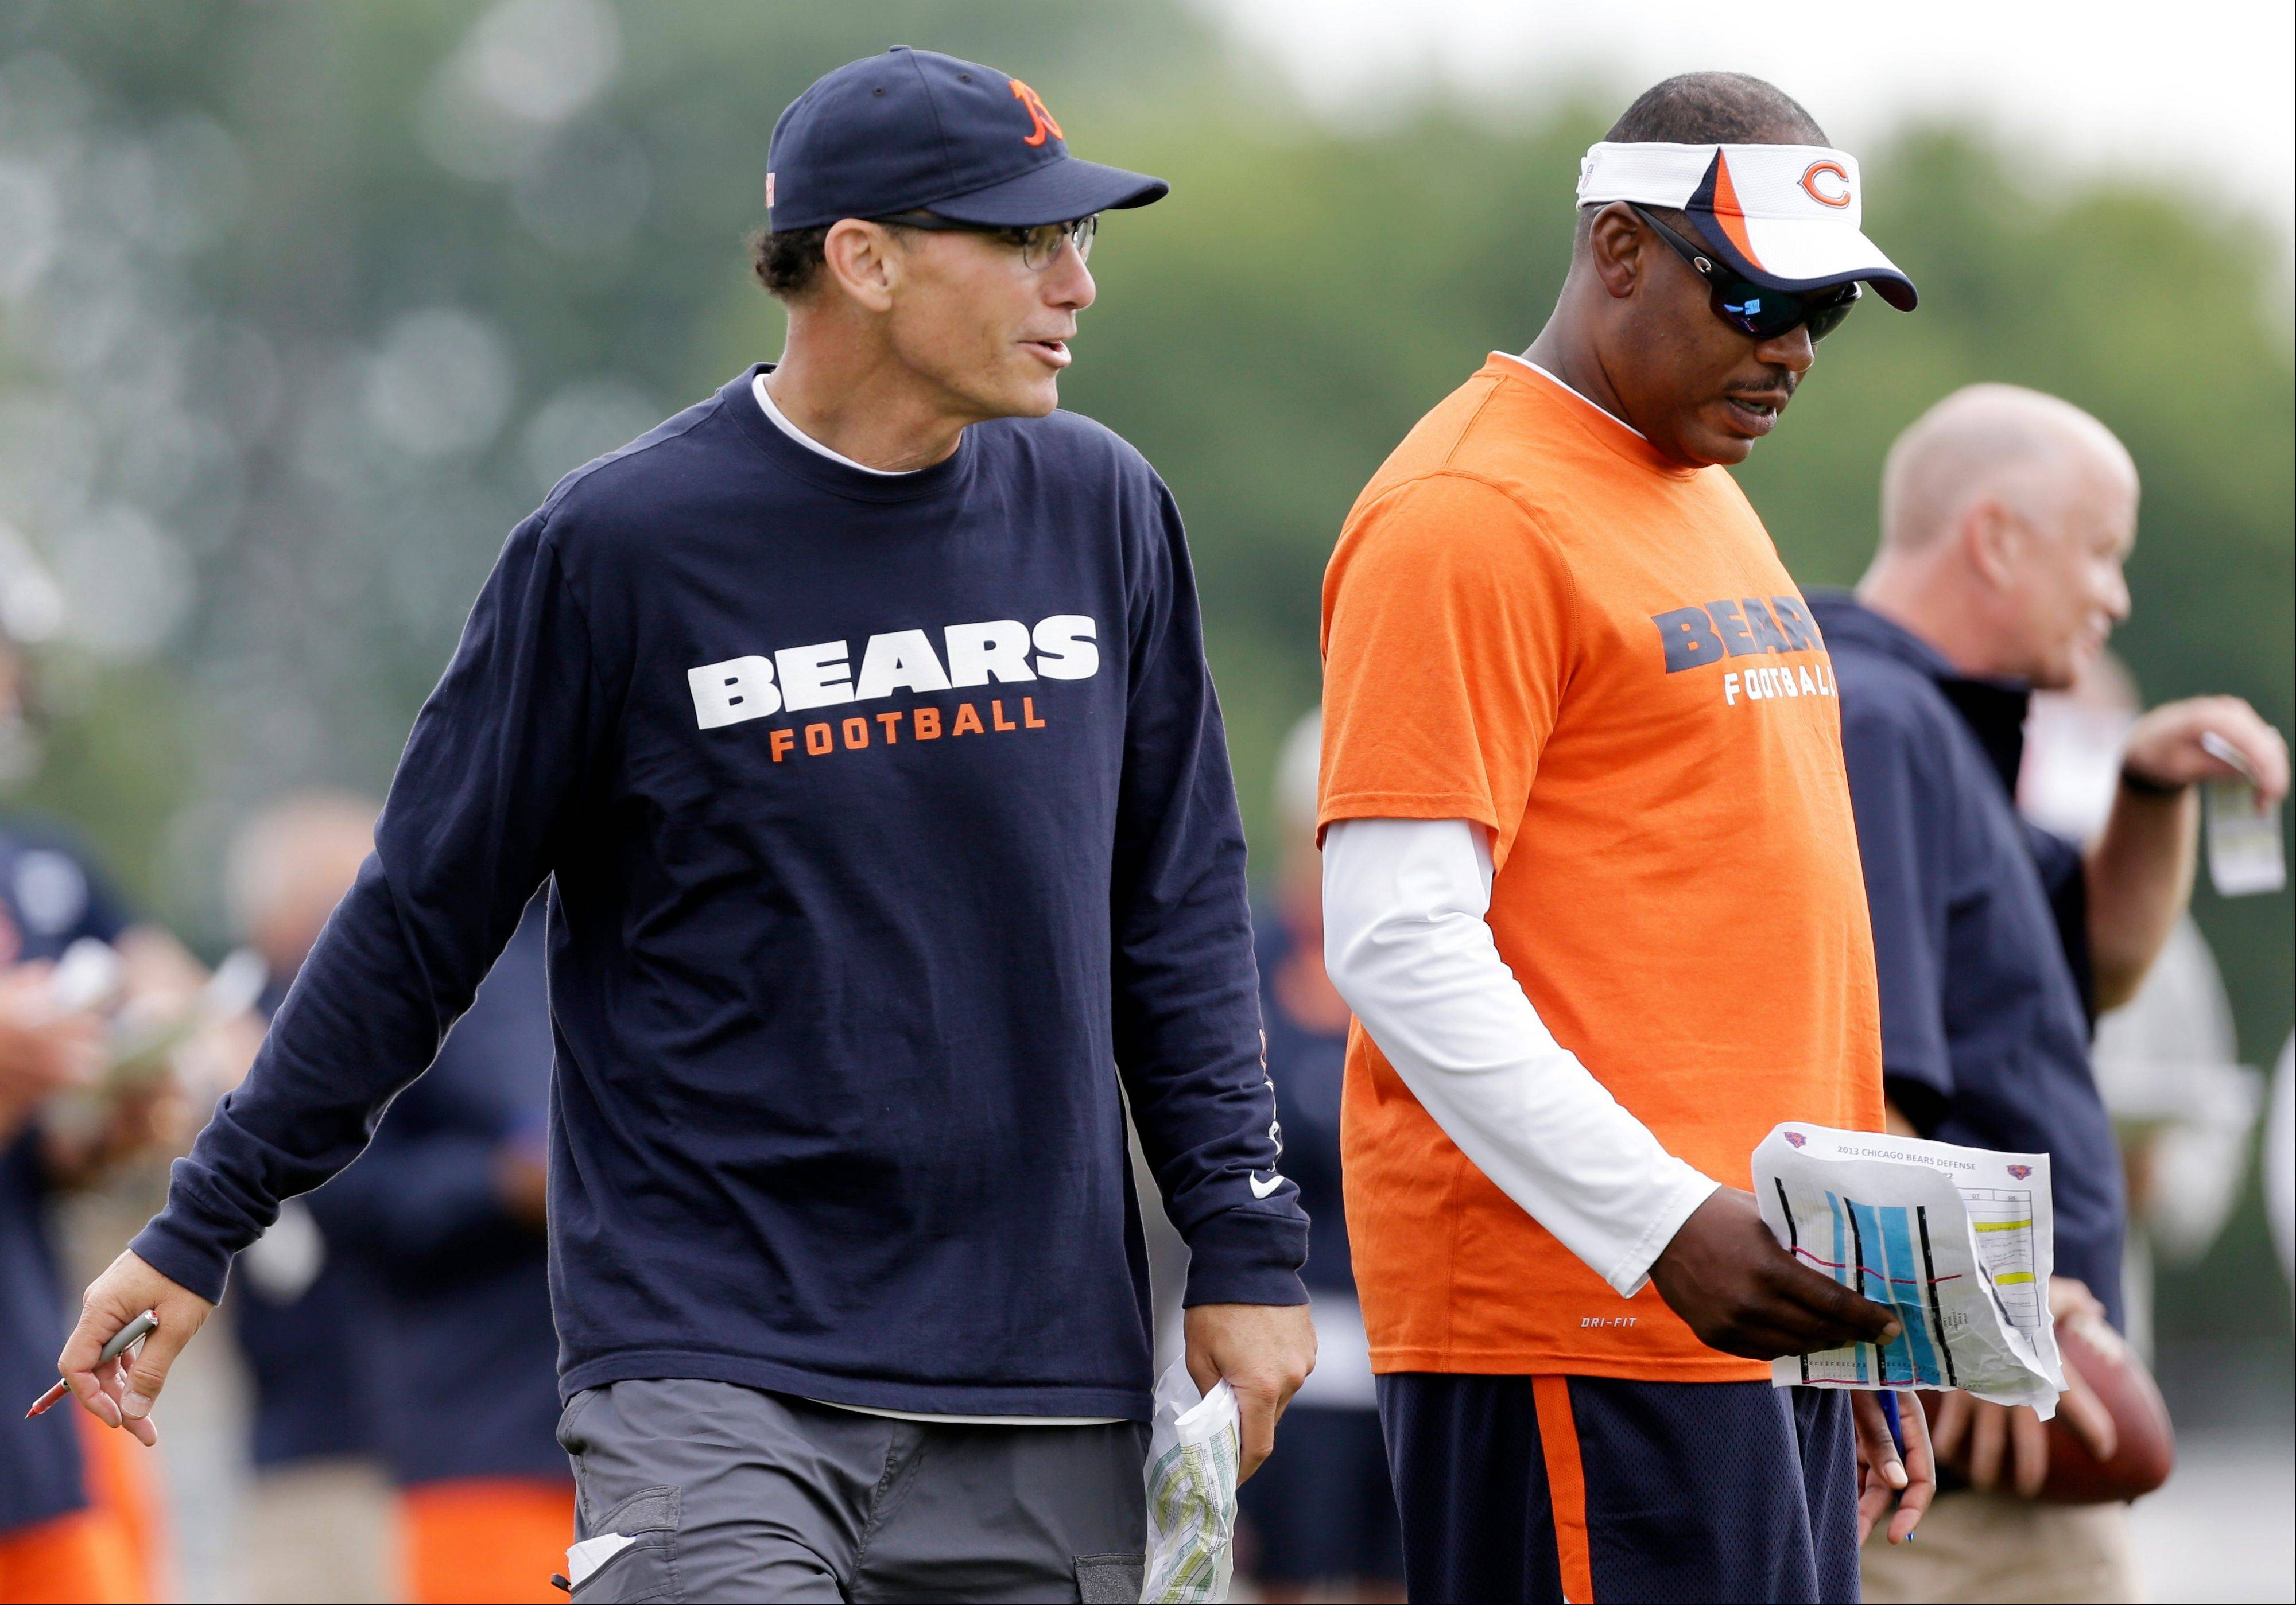 Bears' new defensive coordinator confident that team is on board